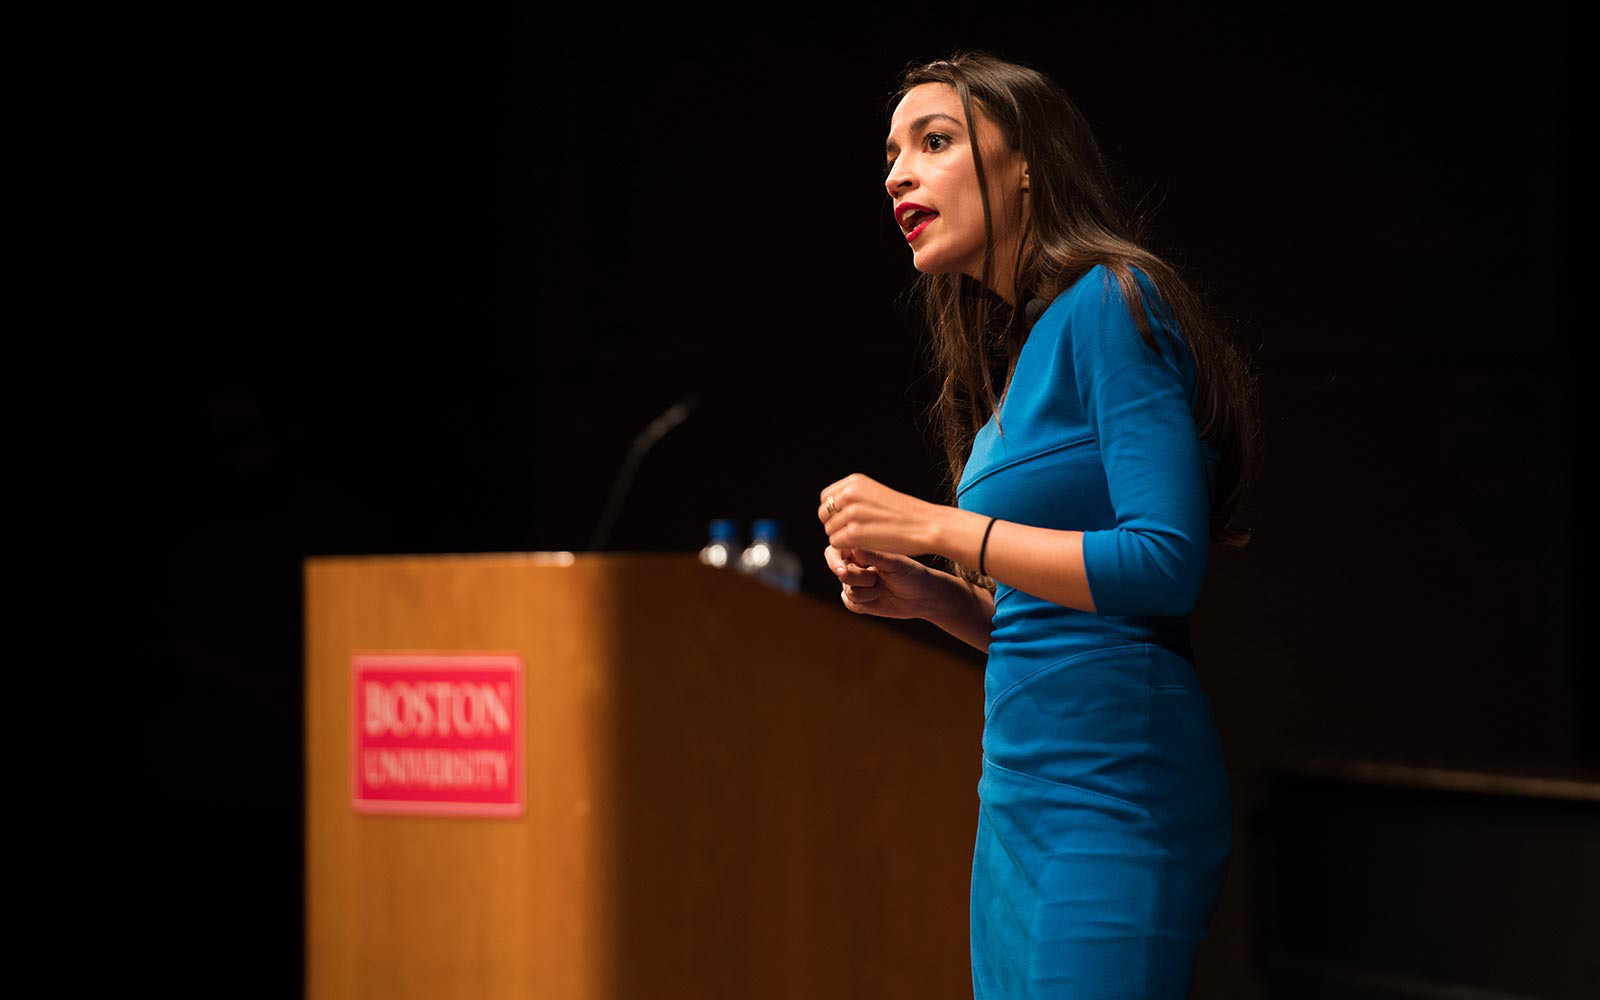 2018 midterms candidate from New York, Alexandria Ocasio-Cortez, speaks to a crowded auditorium at her alma mater Boston University.